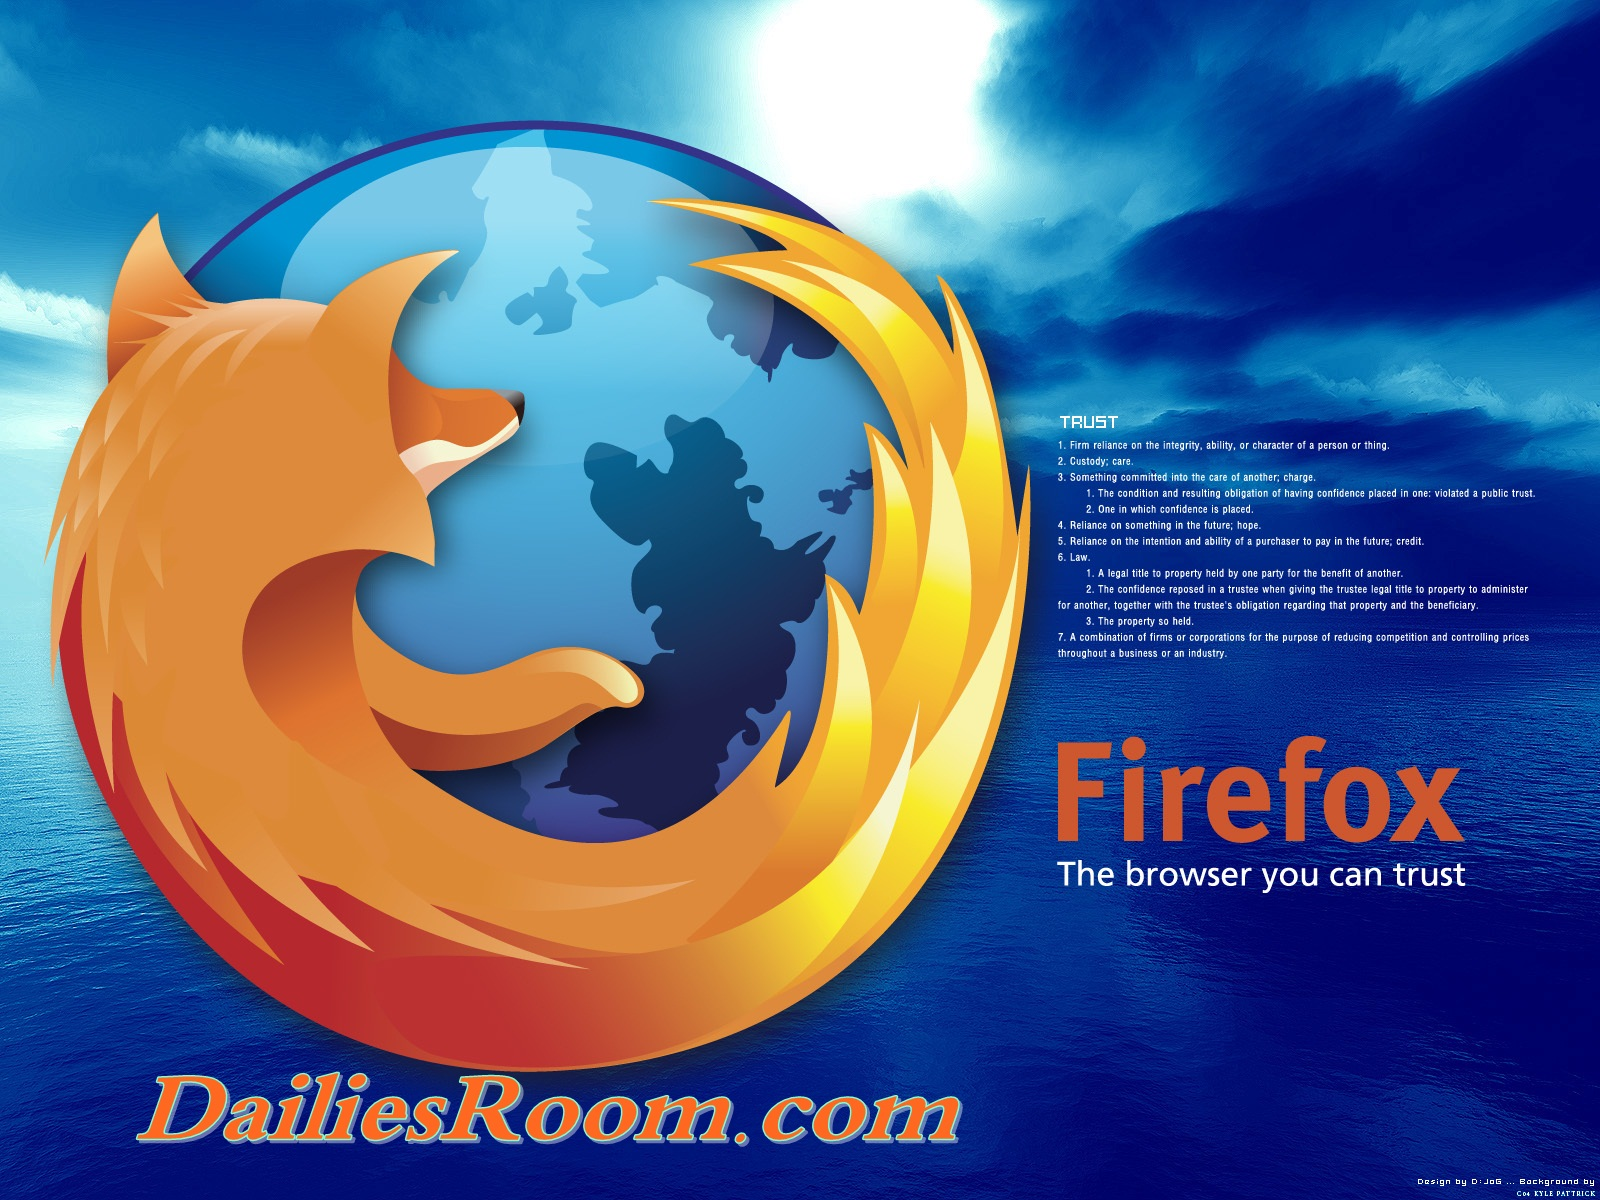 Download and install Firefox browser free for Android | Browse freely and securely